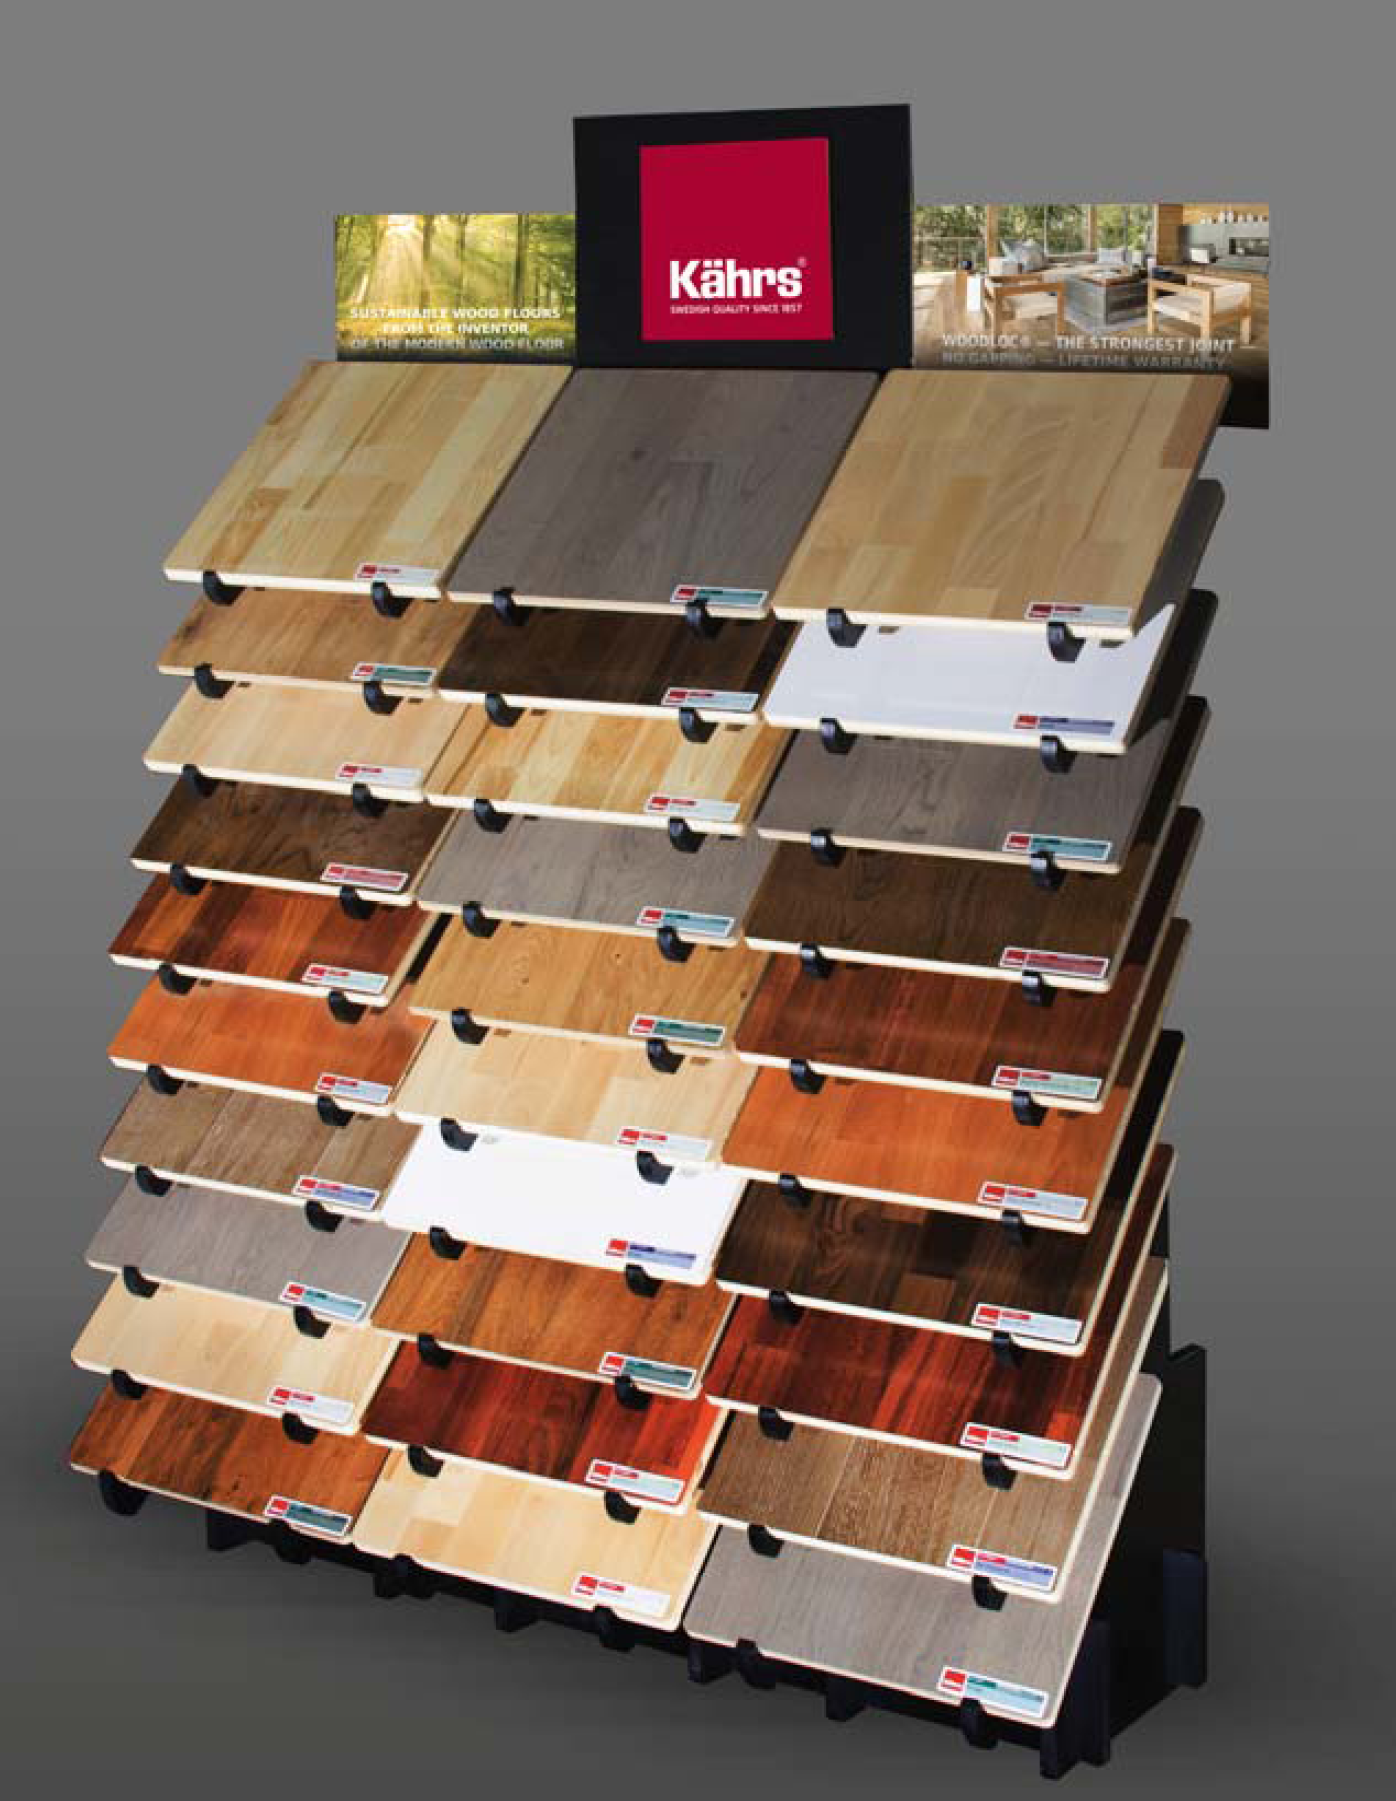 Kahrs Waterfall WF-30 Display